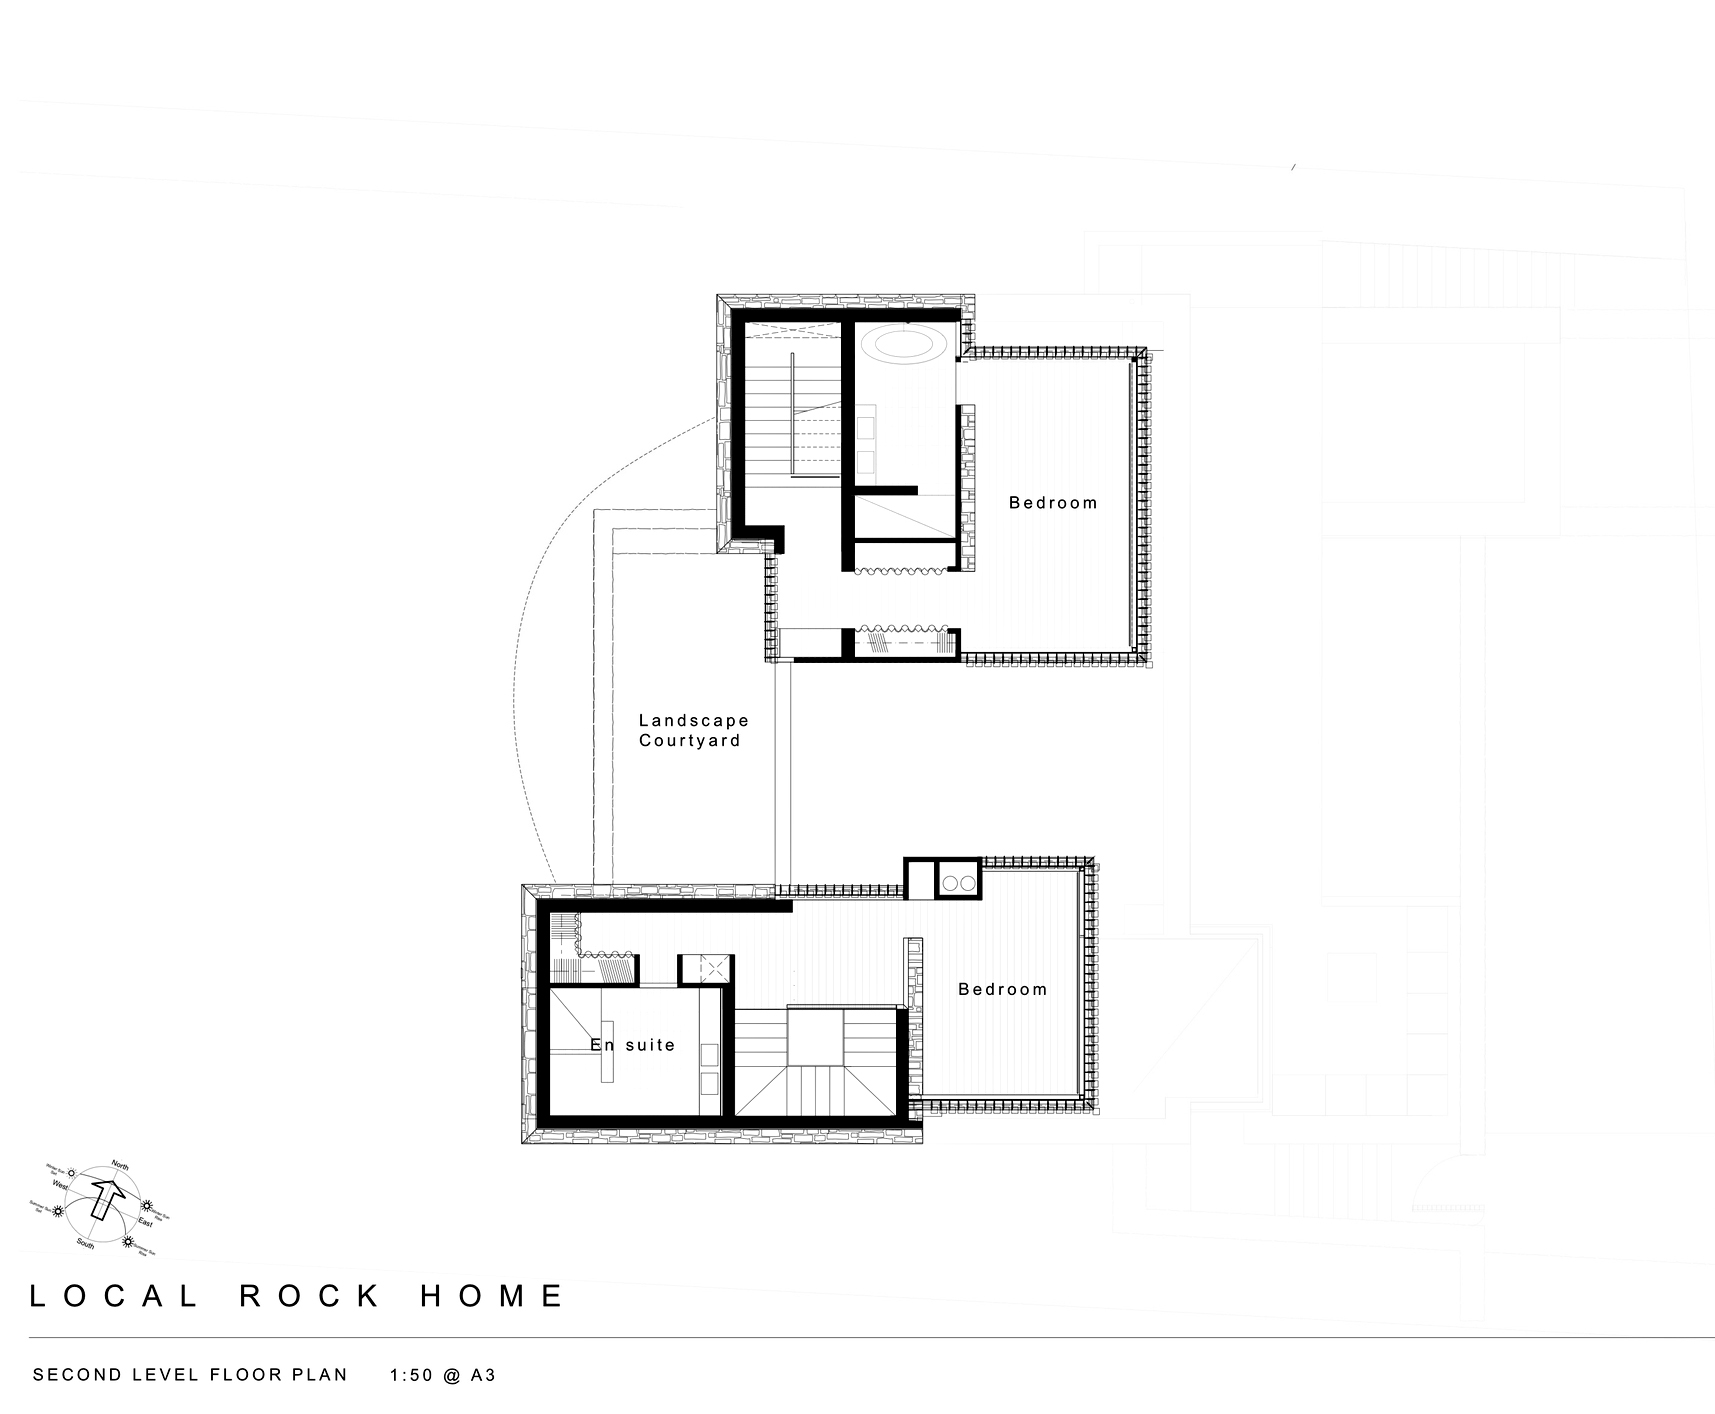 Second Level Floor Plan - Local Rock House - Waiheke Island, Auckland, New Zealand